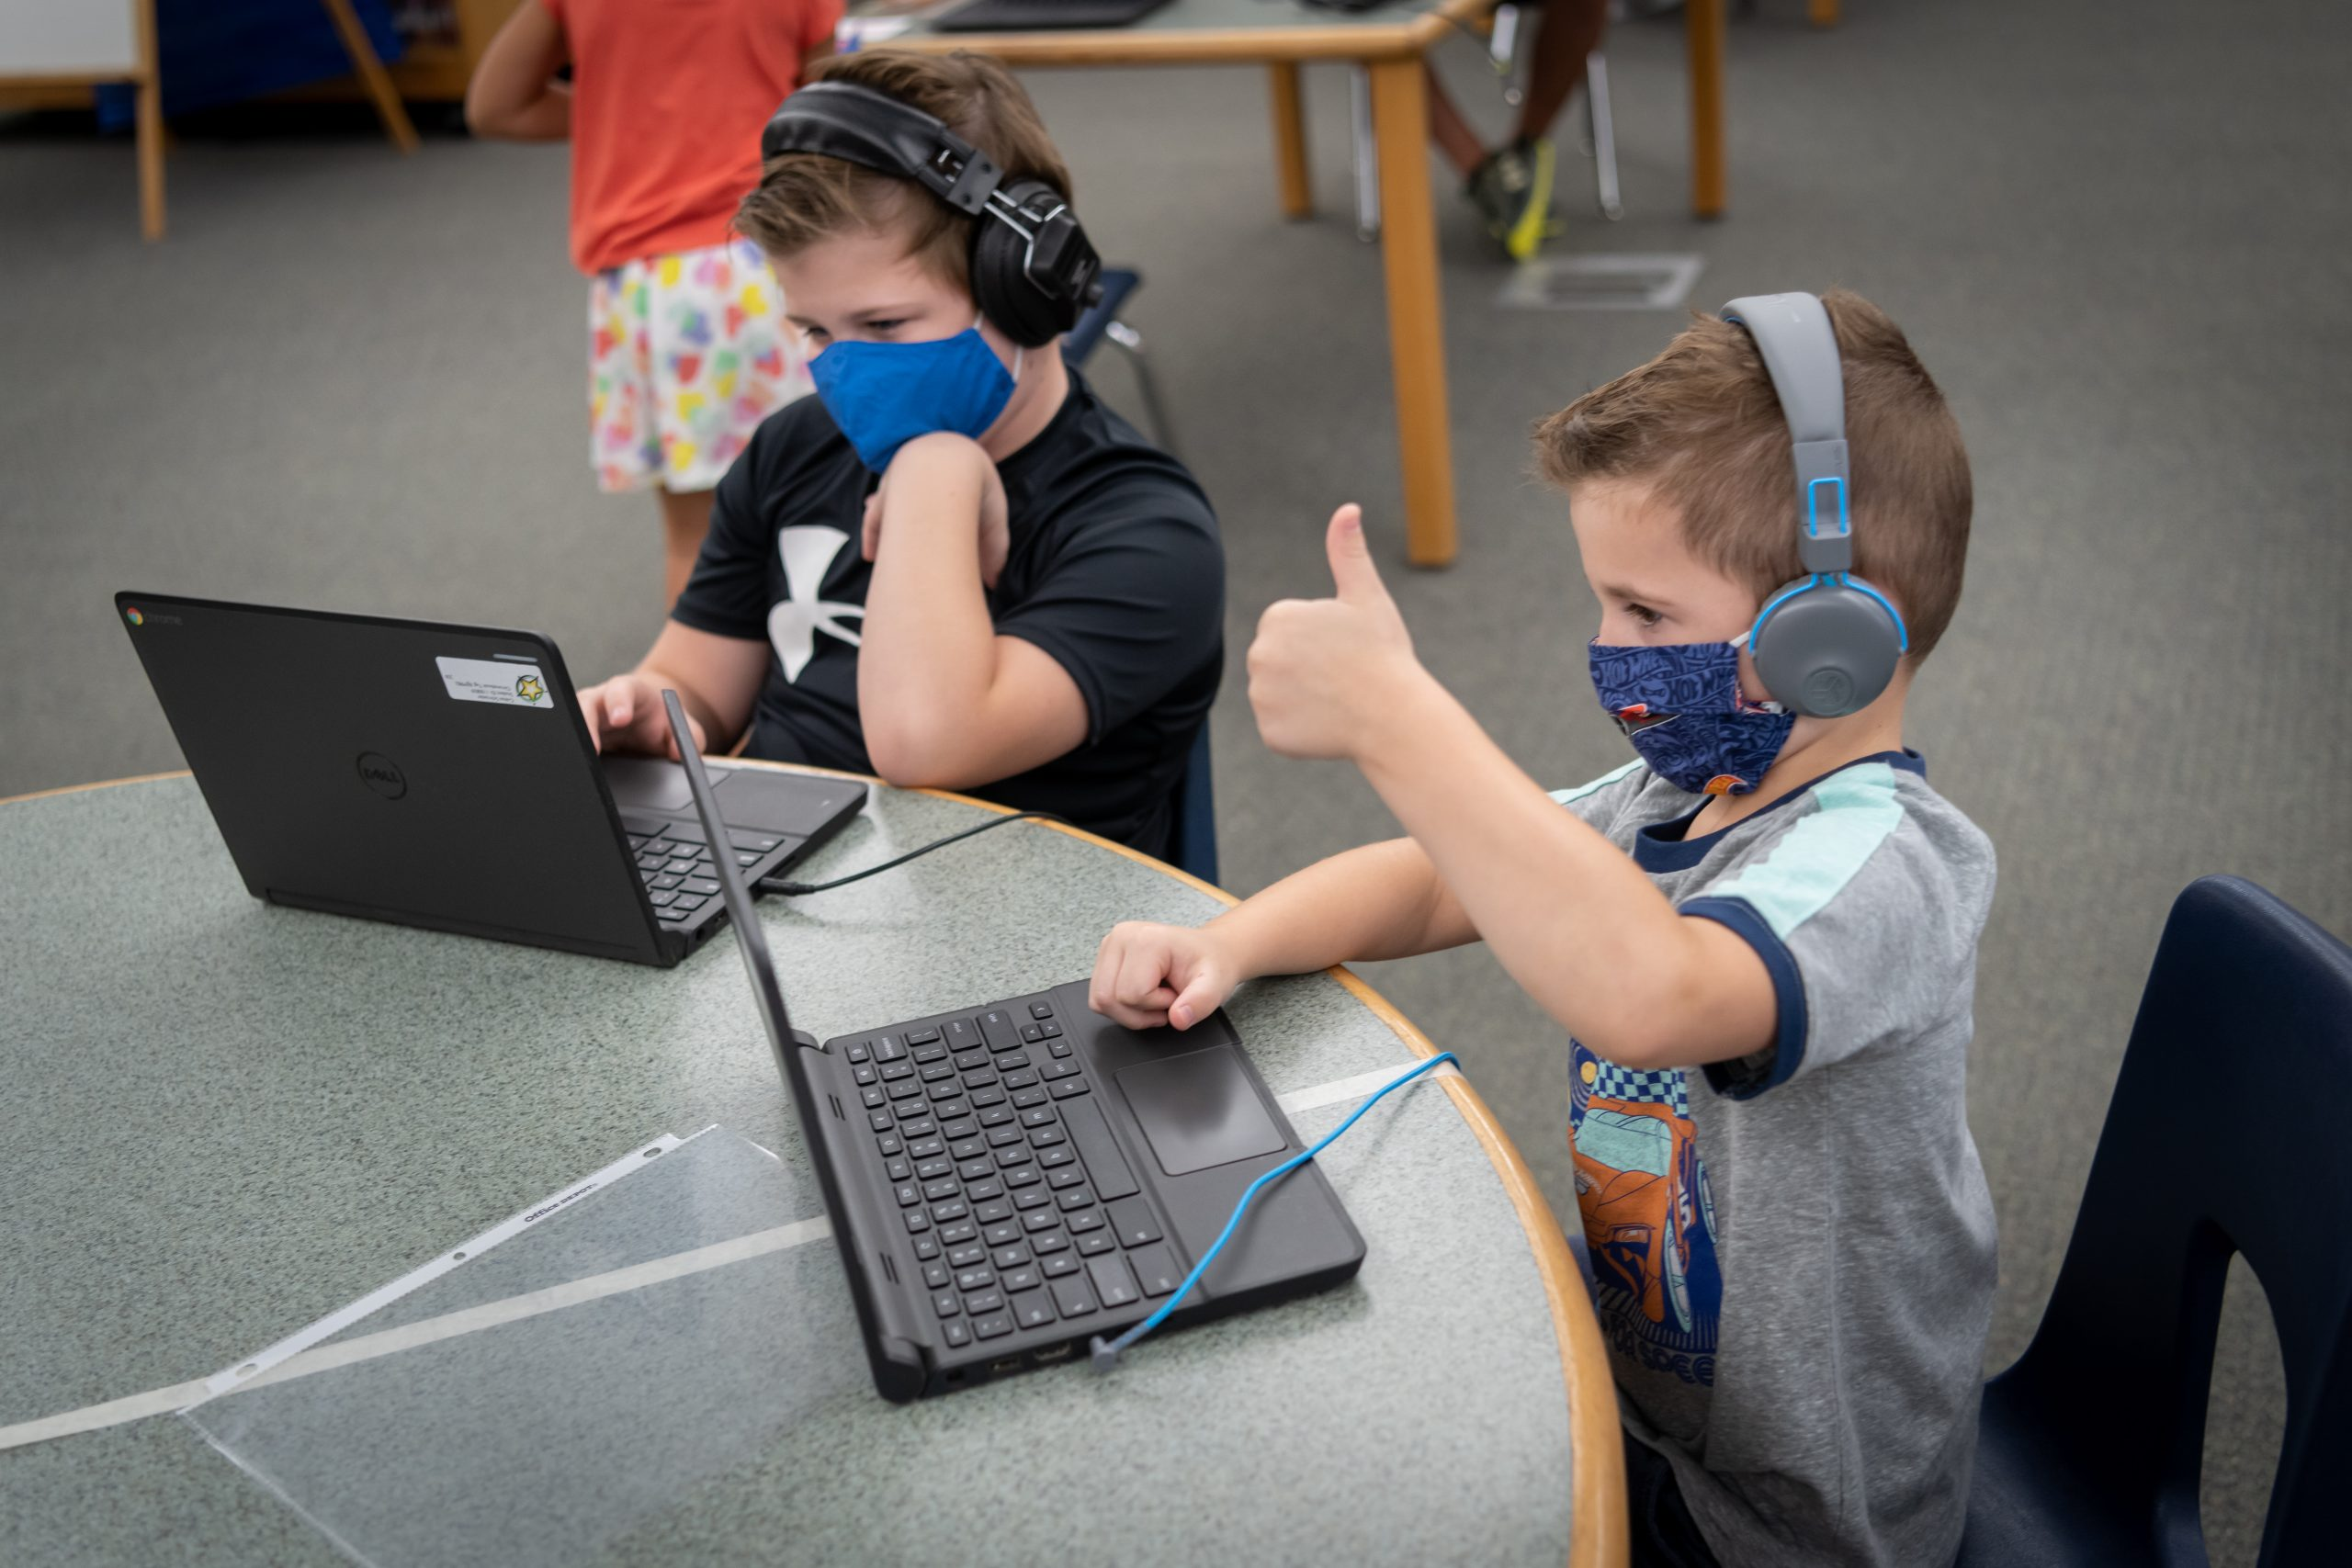 Marley Park Elementary School Students Conner Schroeder, Kindergarten And Colton Schroeder, 5th Grade, Participate In Remote Learning Through An In-person Learning Lab. Photo Courtesy Of Dysart Unified School District